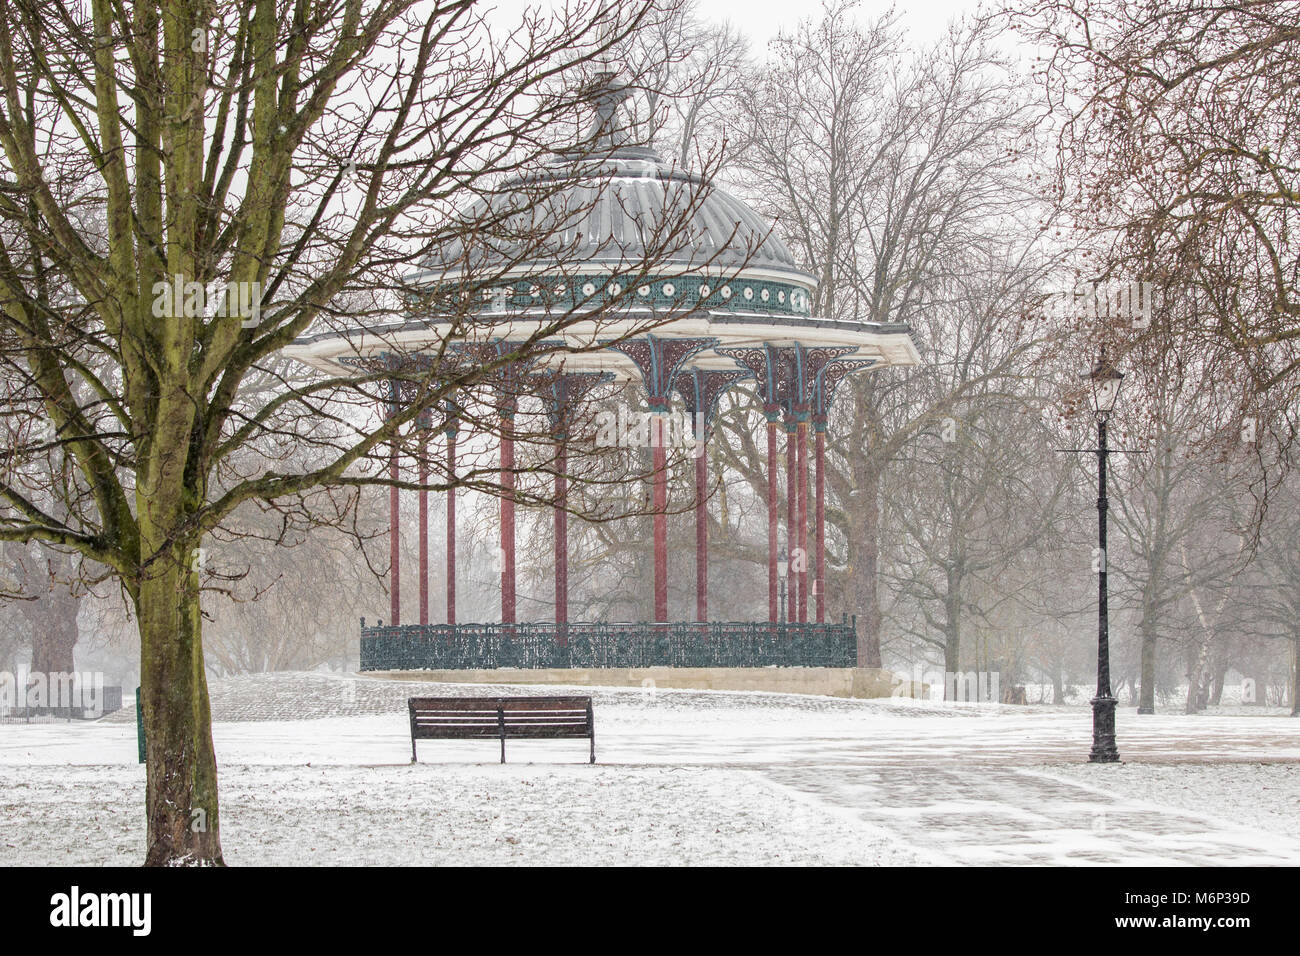 Clapham Common Bandstand in winter - Stock Image